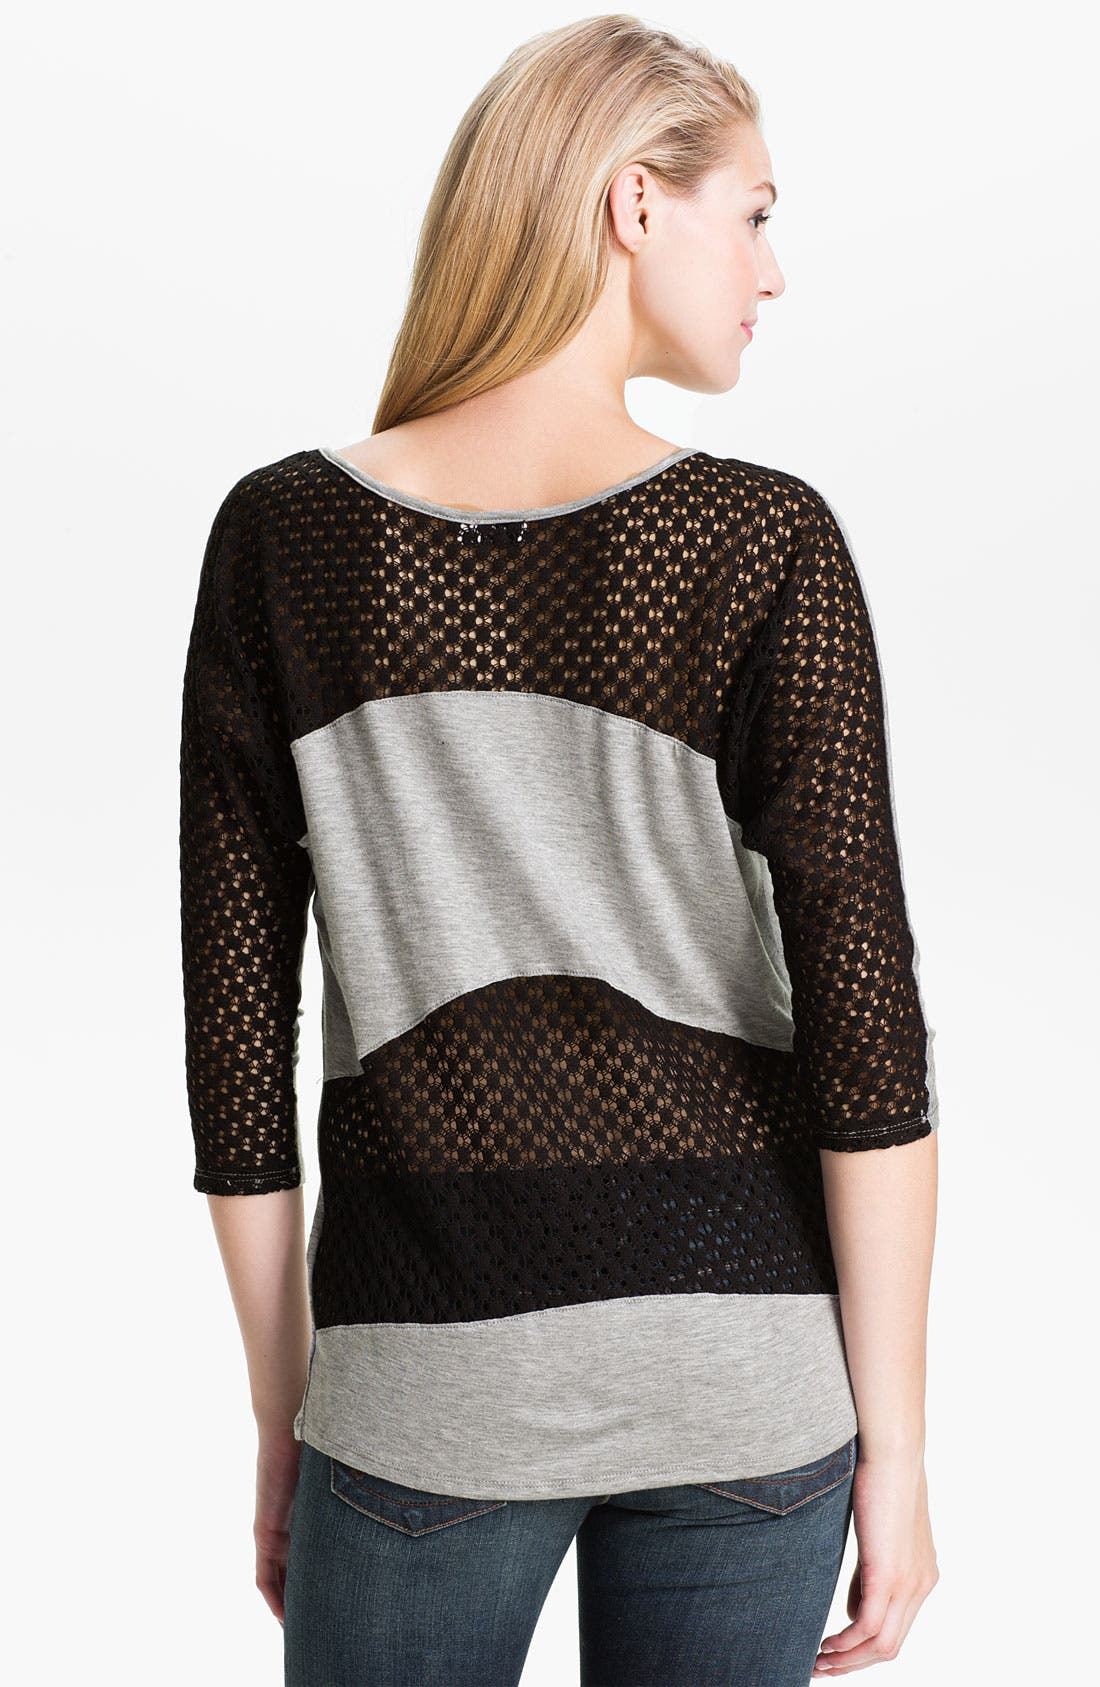 Main Image - KUT from the Kloth 'Lisette' Top (Online Exclusive)